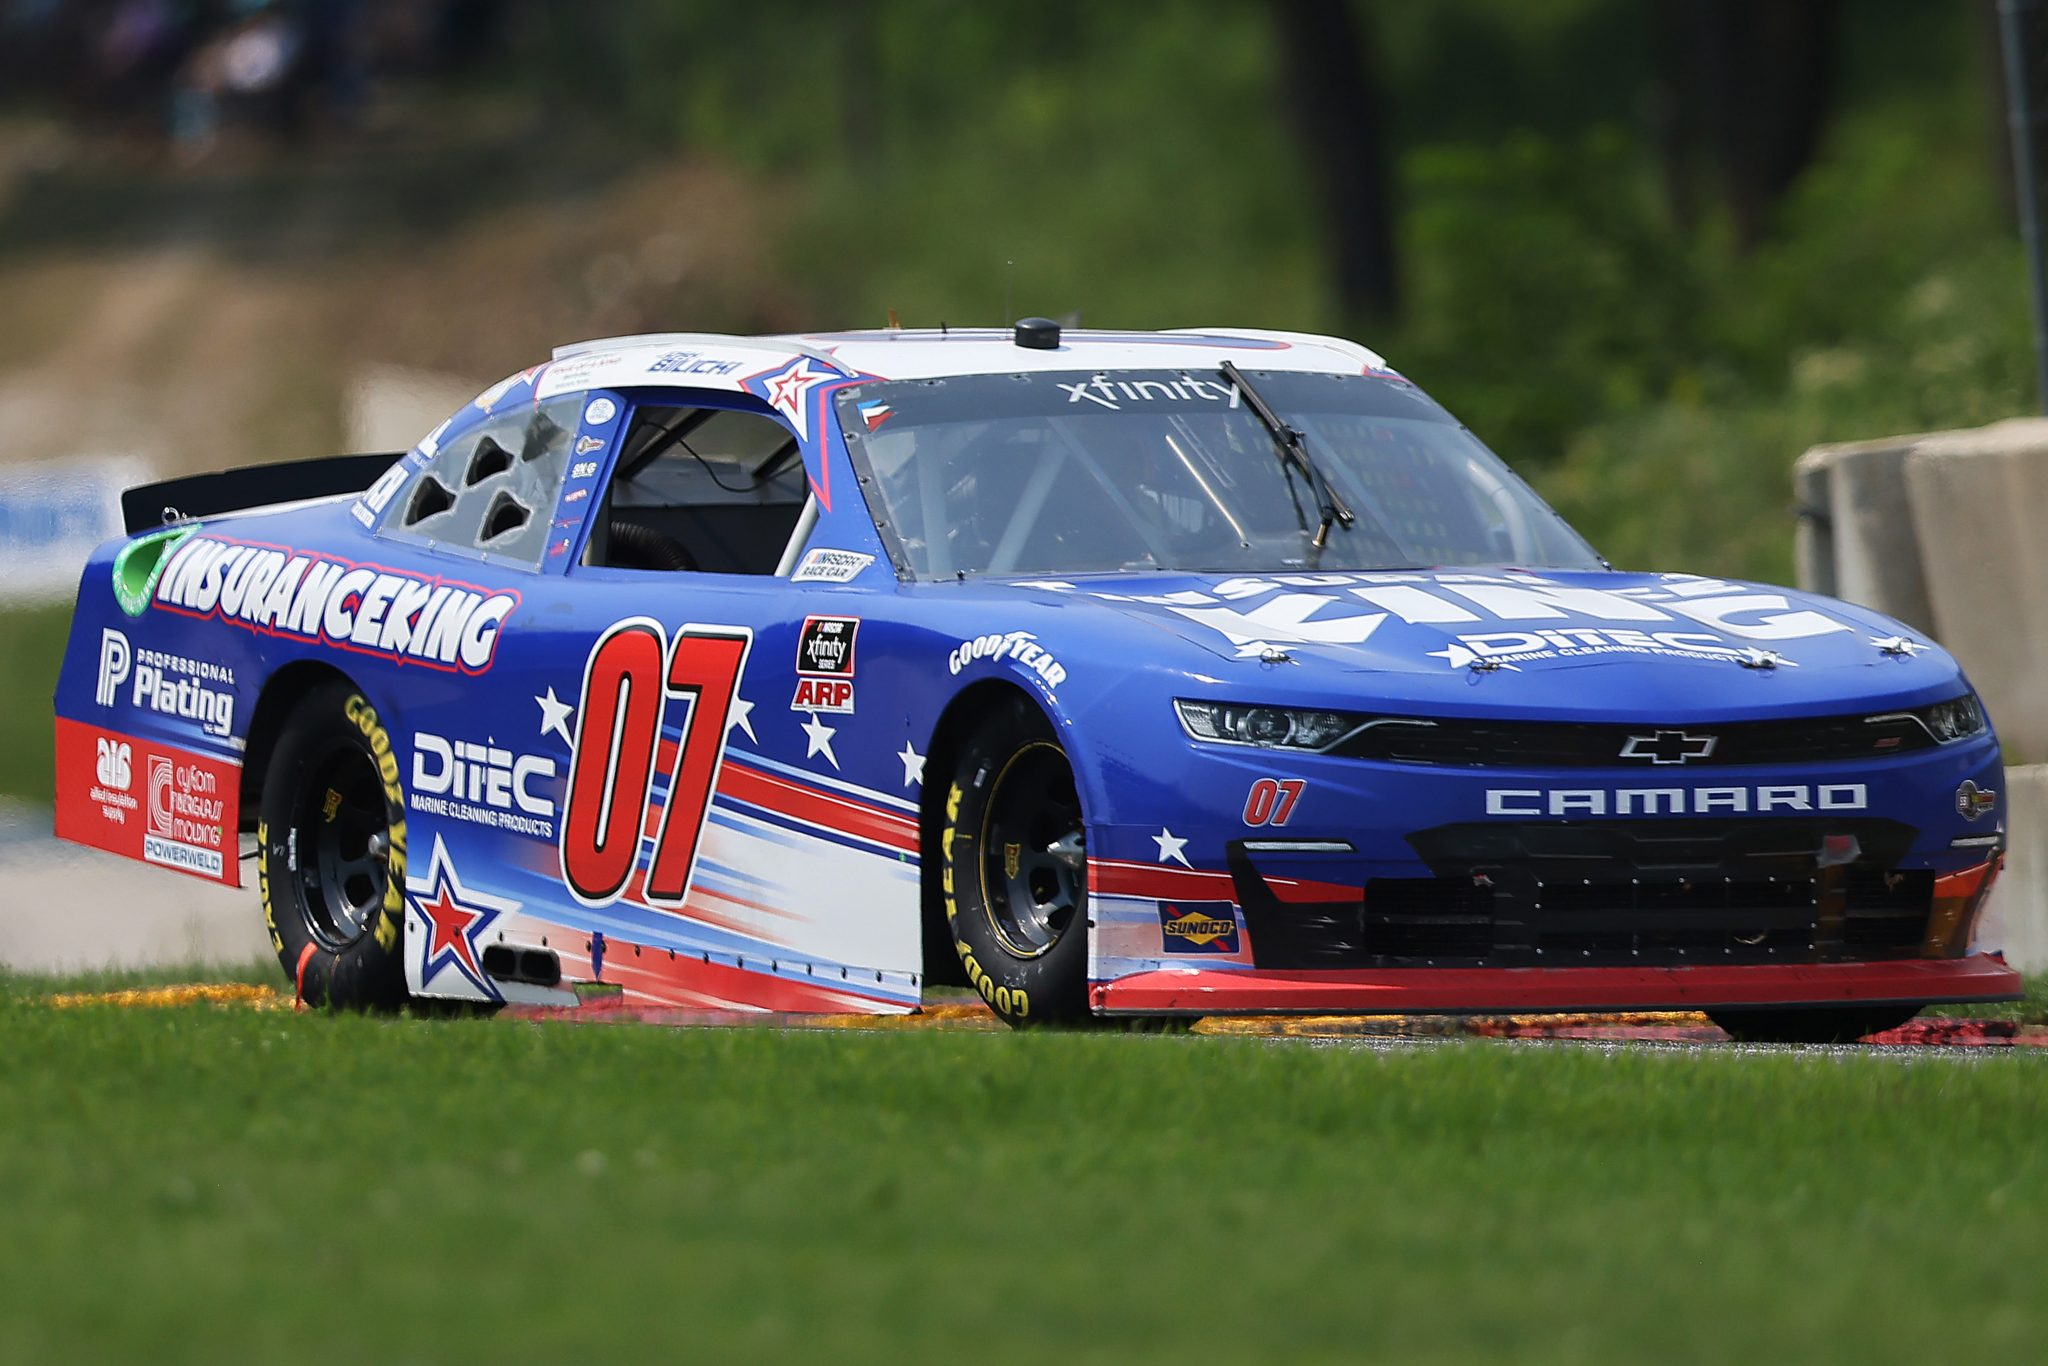 ELKHART LAKE, WISCONSIN - JULY 03: Josh Bilicki, driver of the #07 Insurance King/DITEC Chevrolet, drives during the NASCAR Xfinity Series Henry 180 at Road America on July 03, 2021 in Elkhart Lake, Wisconsin. (Photo by James Gilbert/Getty Images) | Getty Images